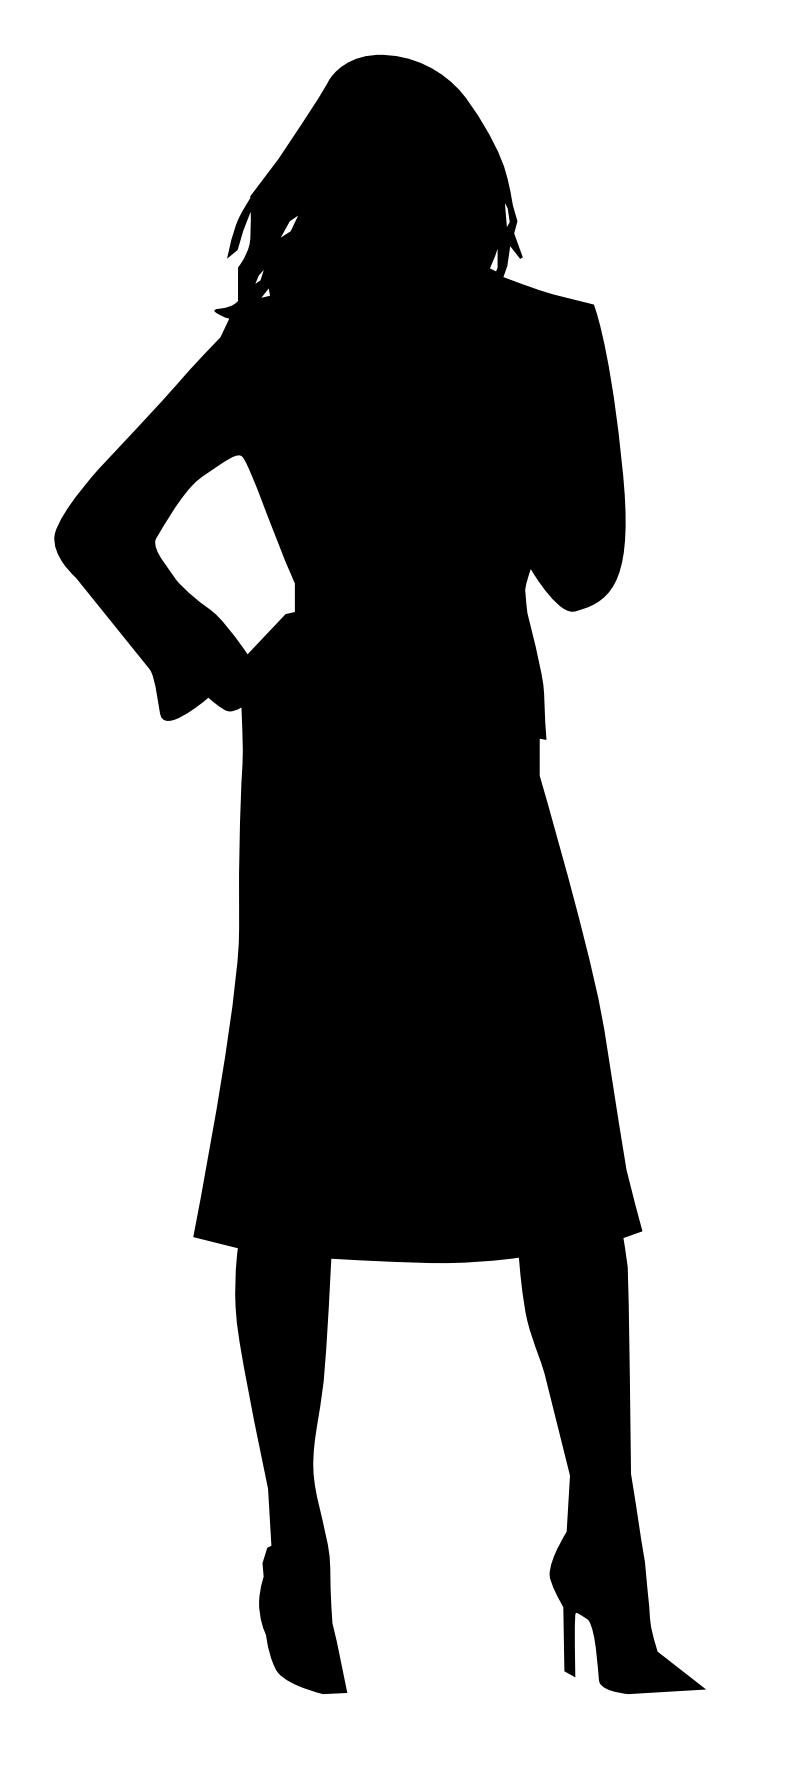 Woman Silhouette SVG - ClipArt Best - ClipArt Best